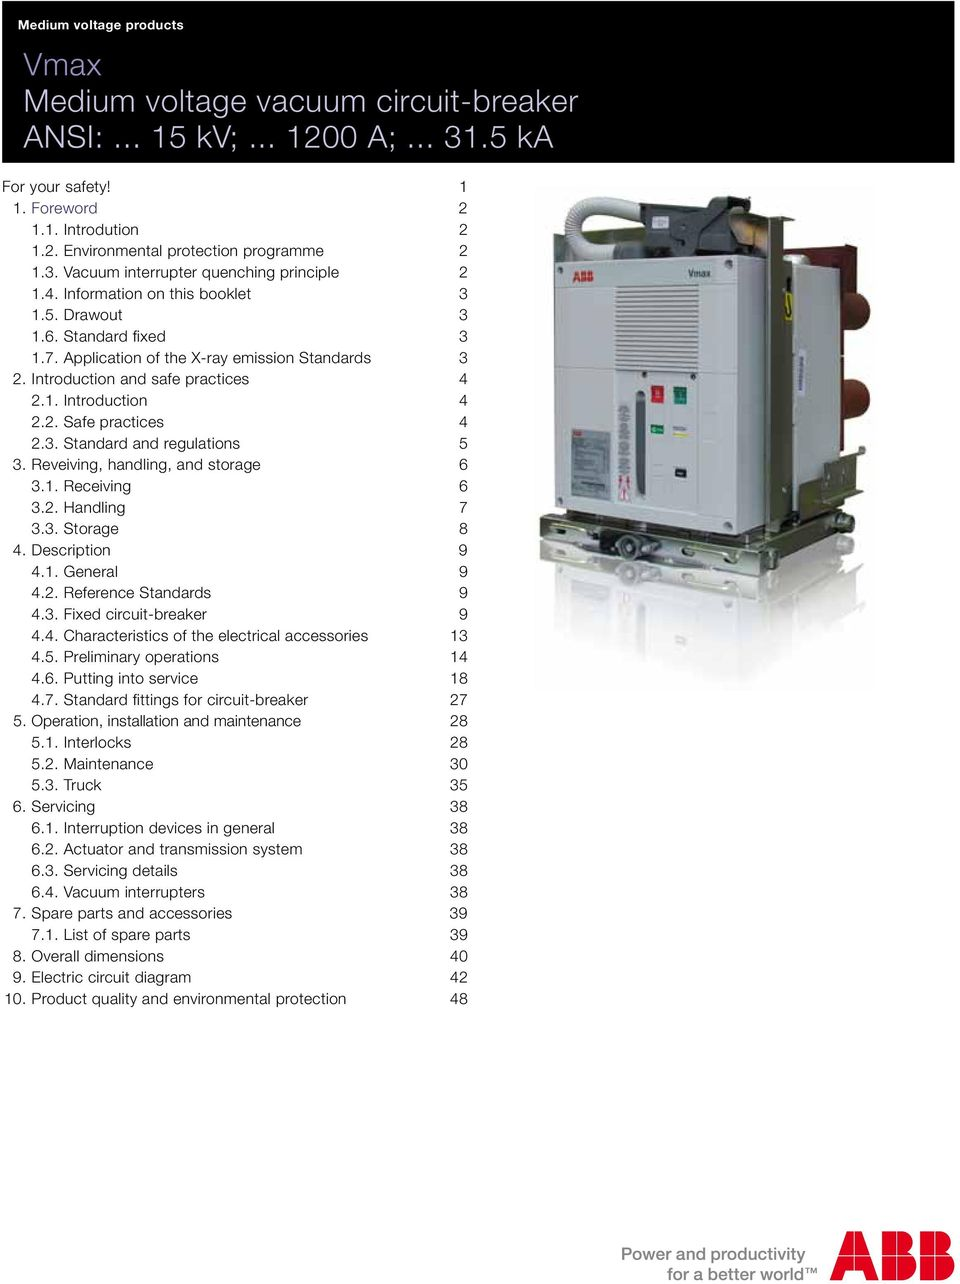 Vmax Medium voltage vacuum circuit-breaker ANSI: kv; A; ka - PDF on